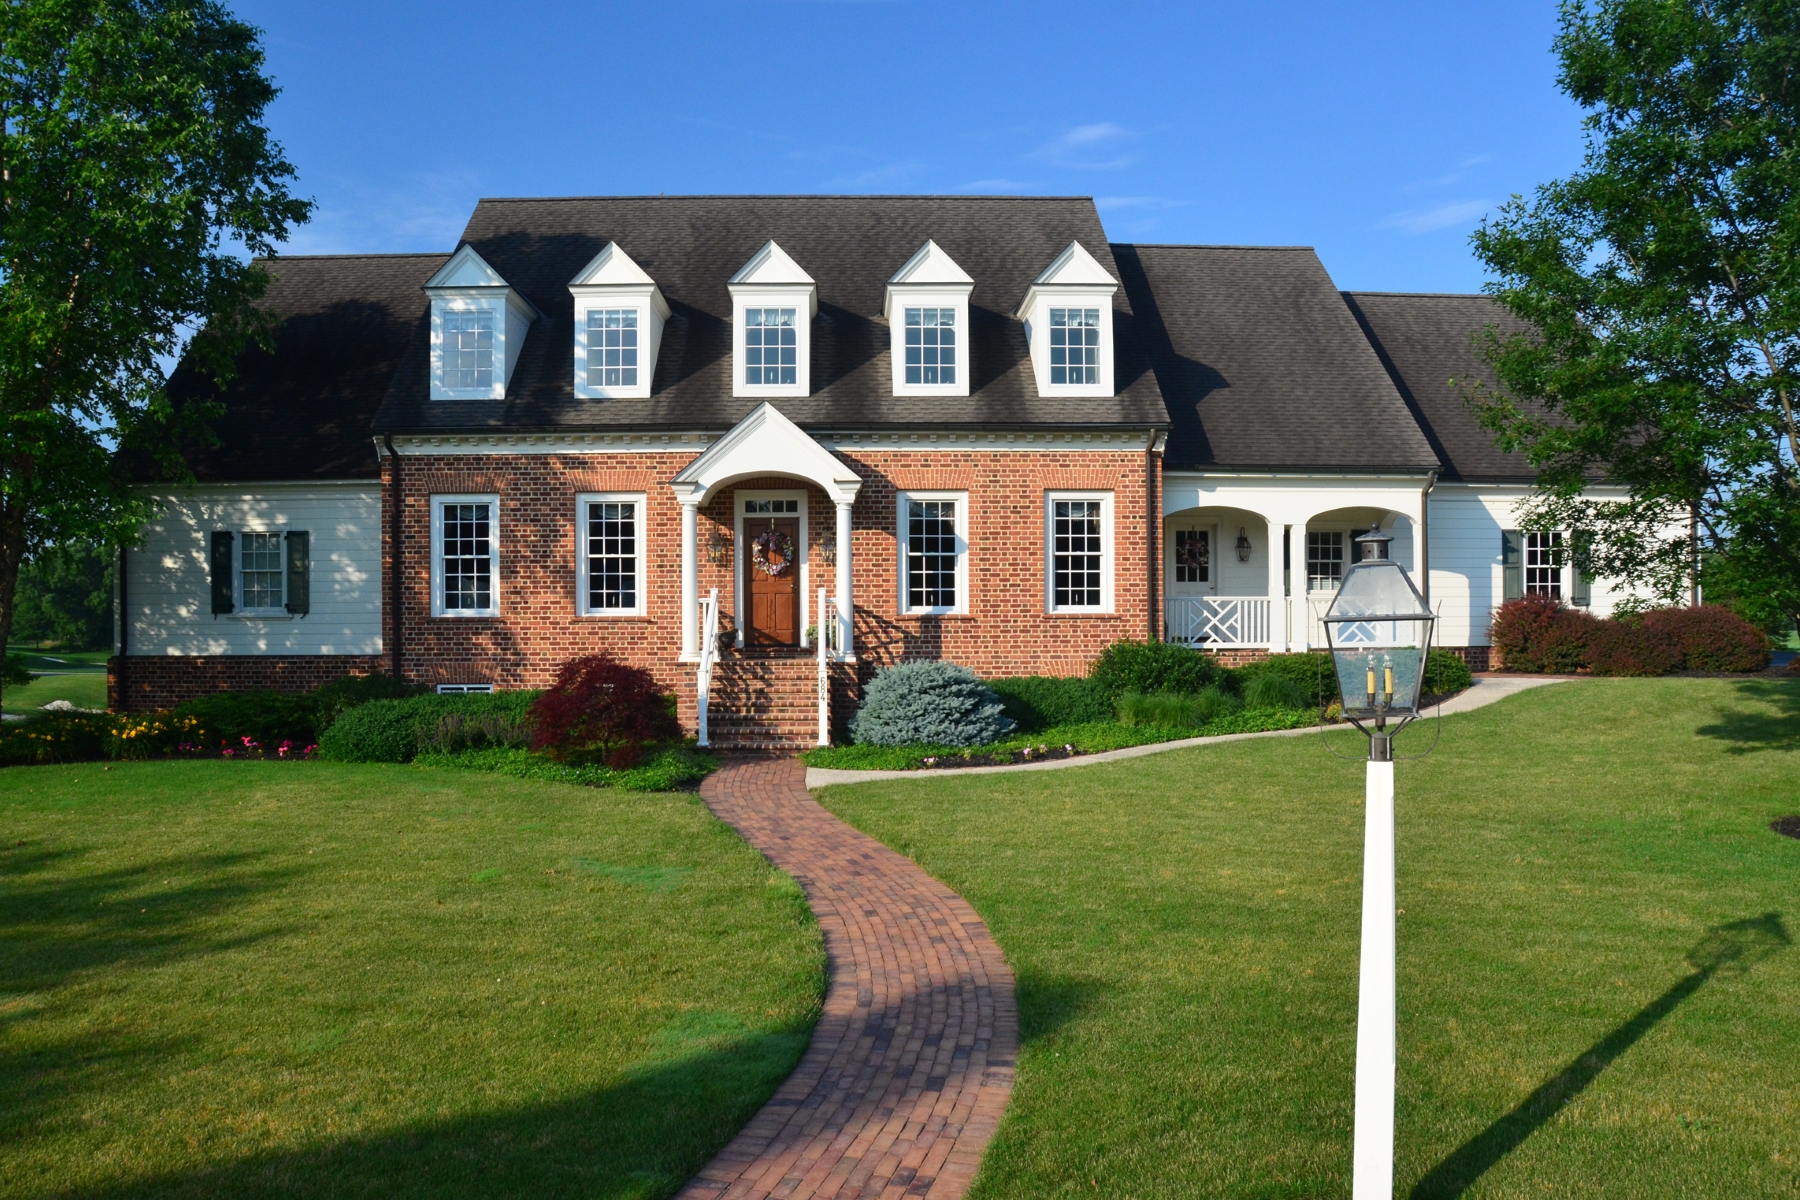 Single Family Home for Sale at Bent Creek 684 Goose Neck Drive Lititz, Pennsylvania 17543 United States